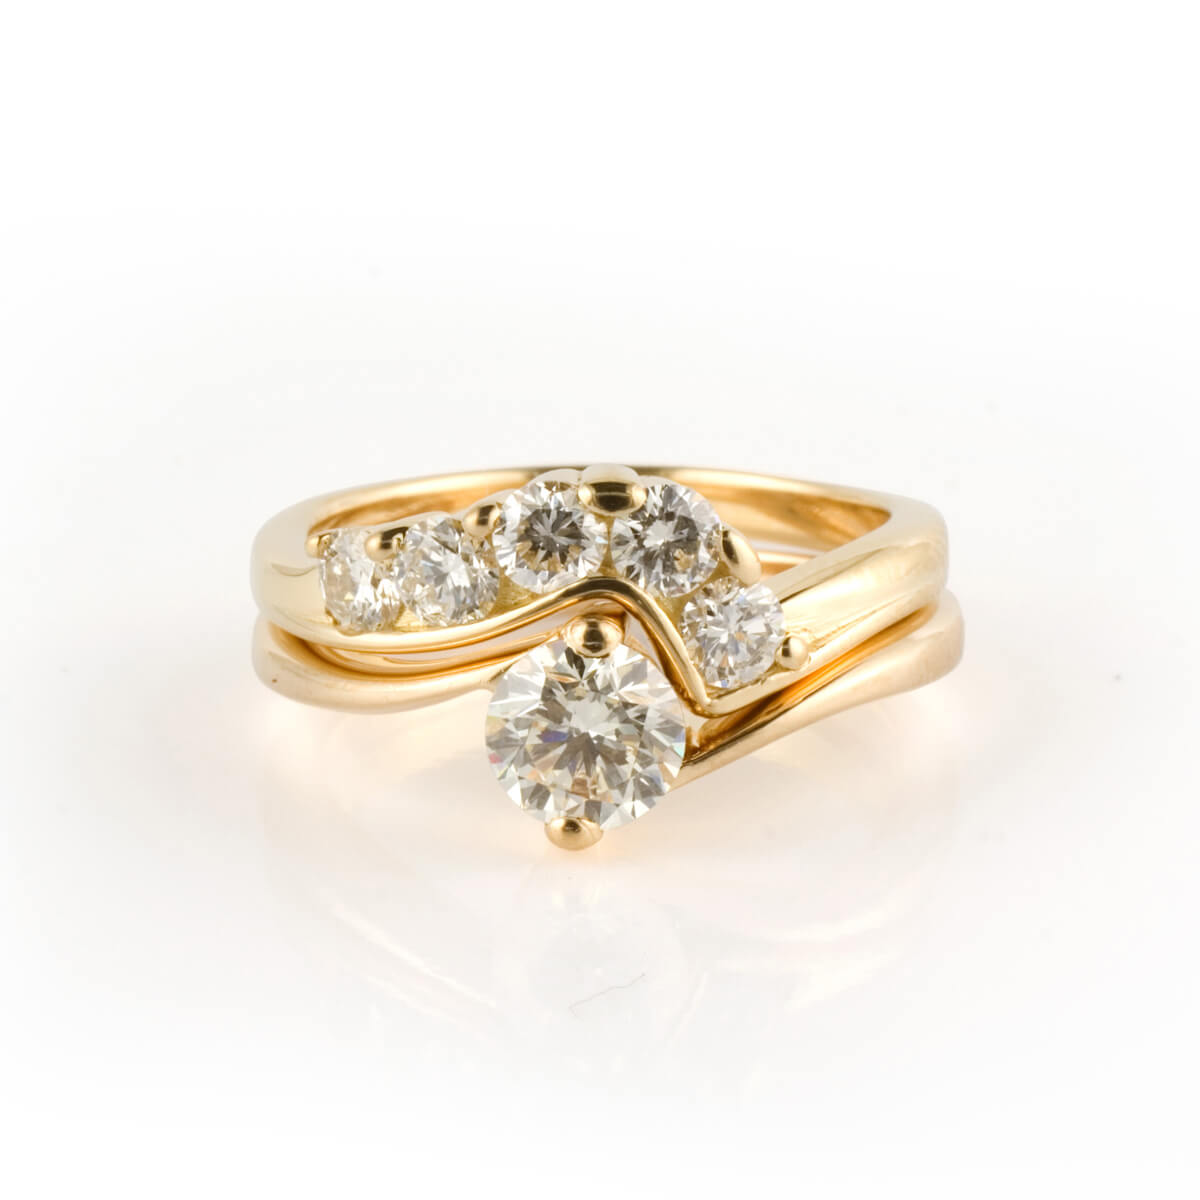 18ct yellow gold and diamond fitted wedding ring 2